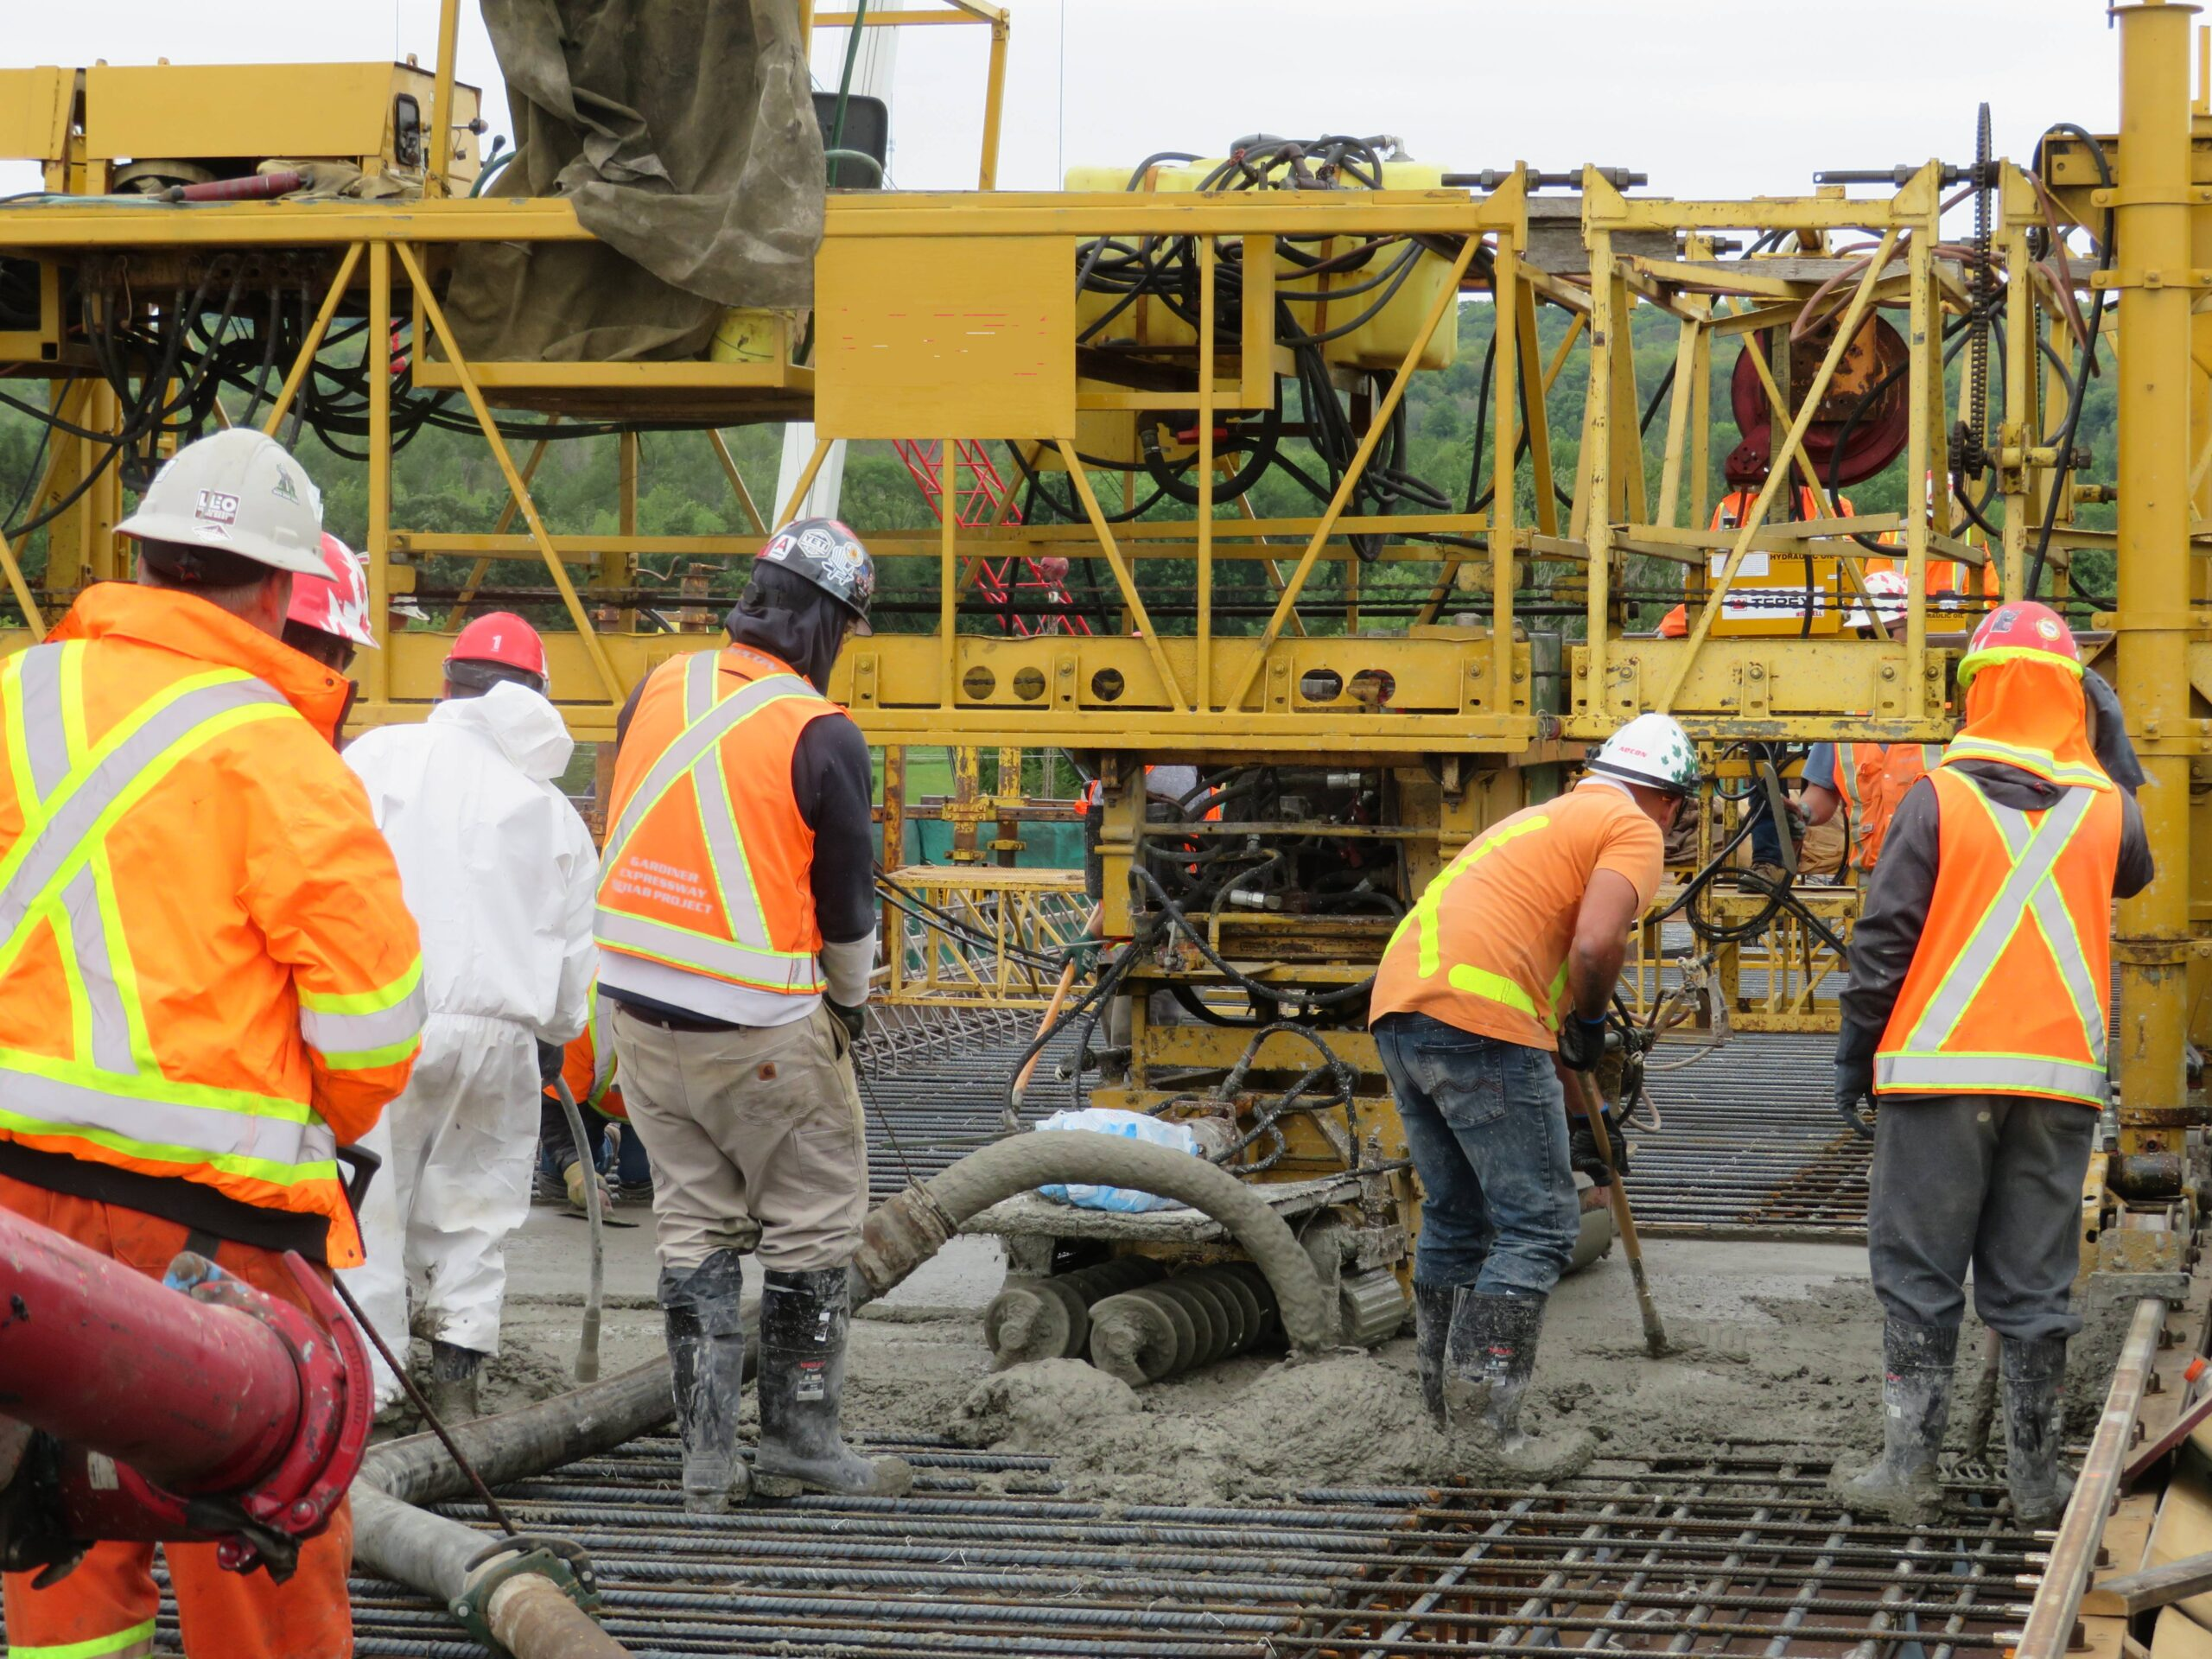 Pumping concrete into the formwork